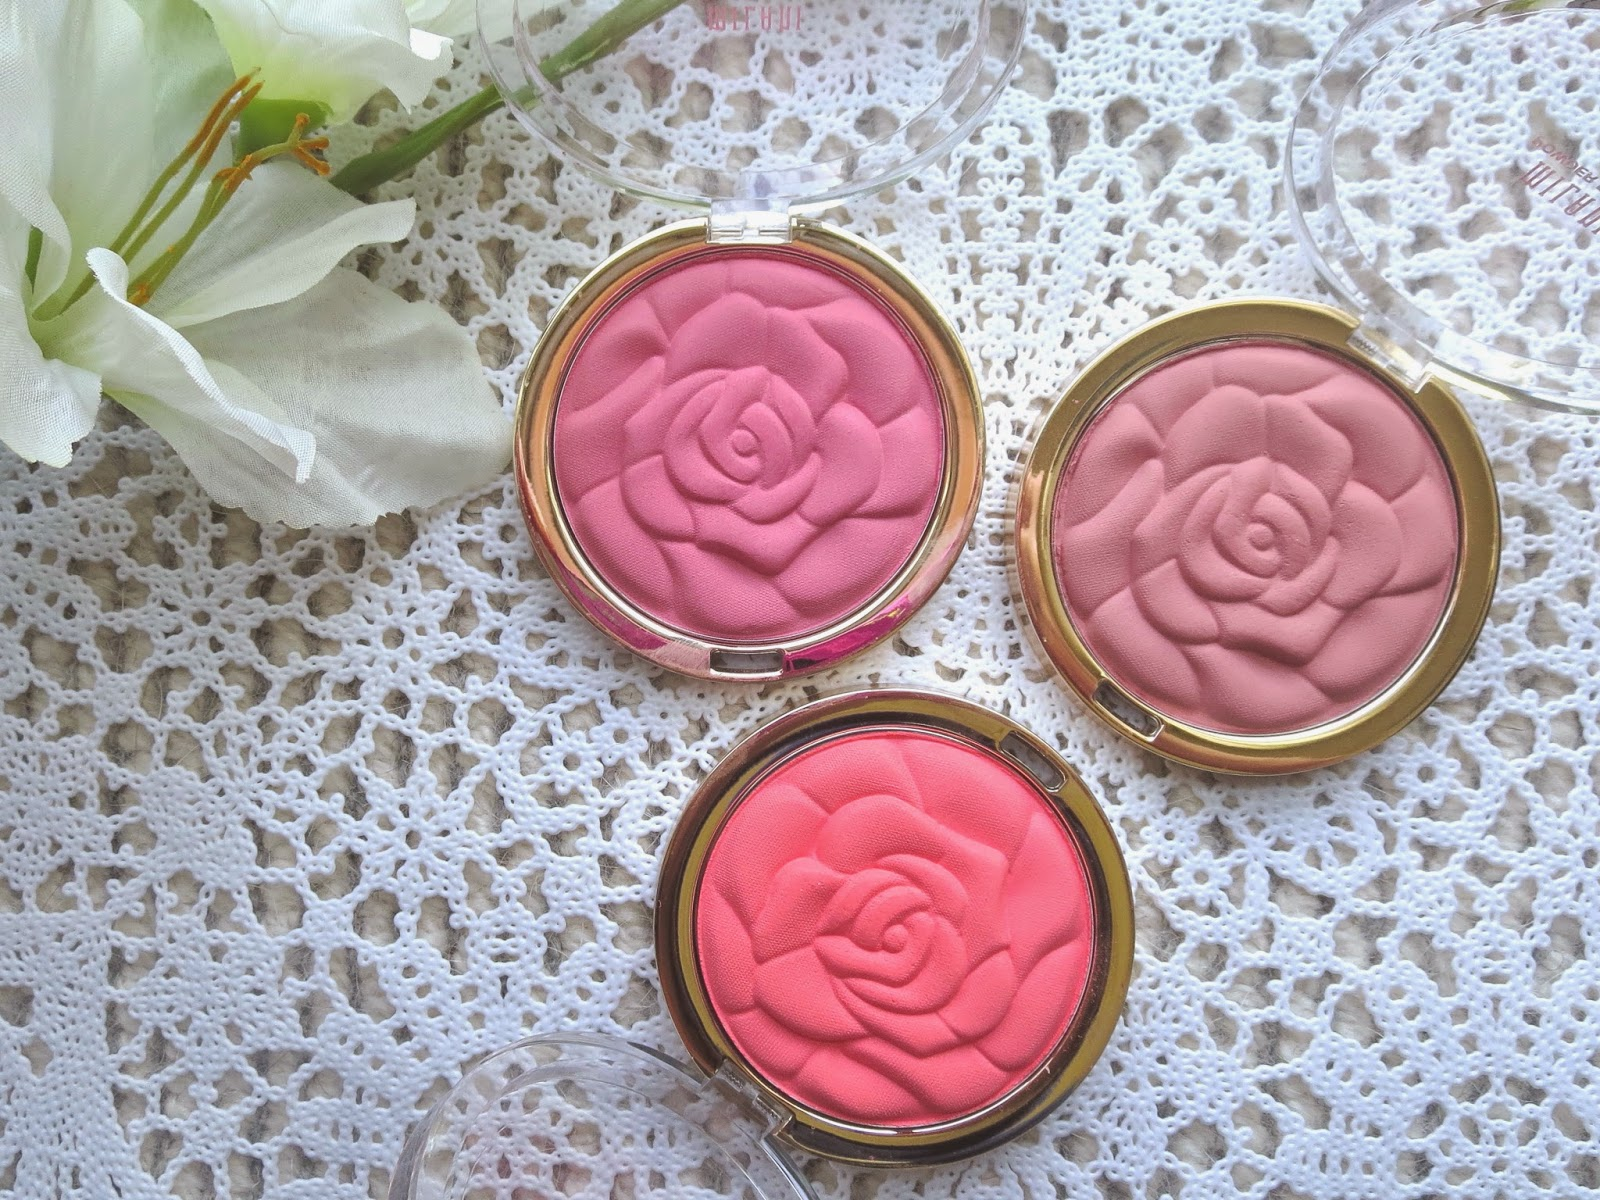 a picture of Milani Rose Powder Blush ; Tea Rose, Romantic Rose, Coral Cove